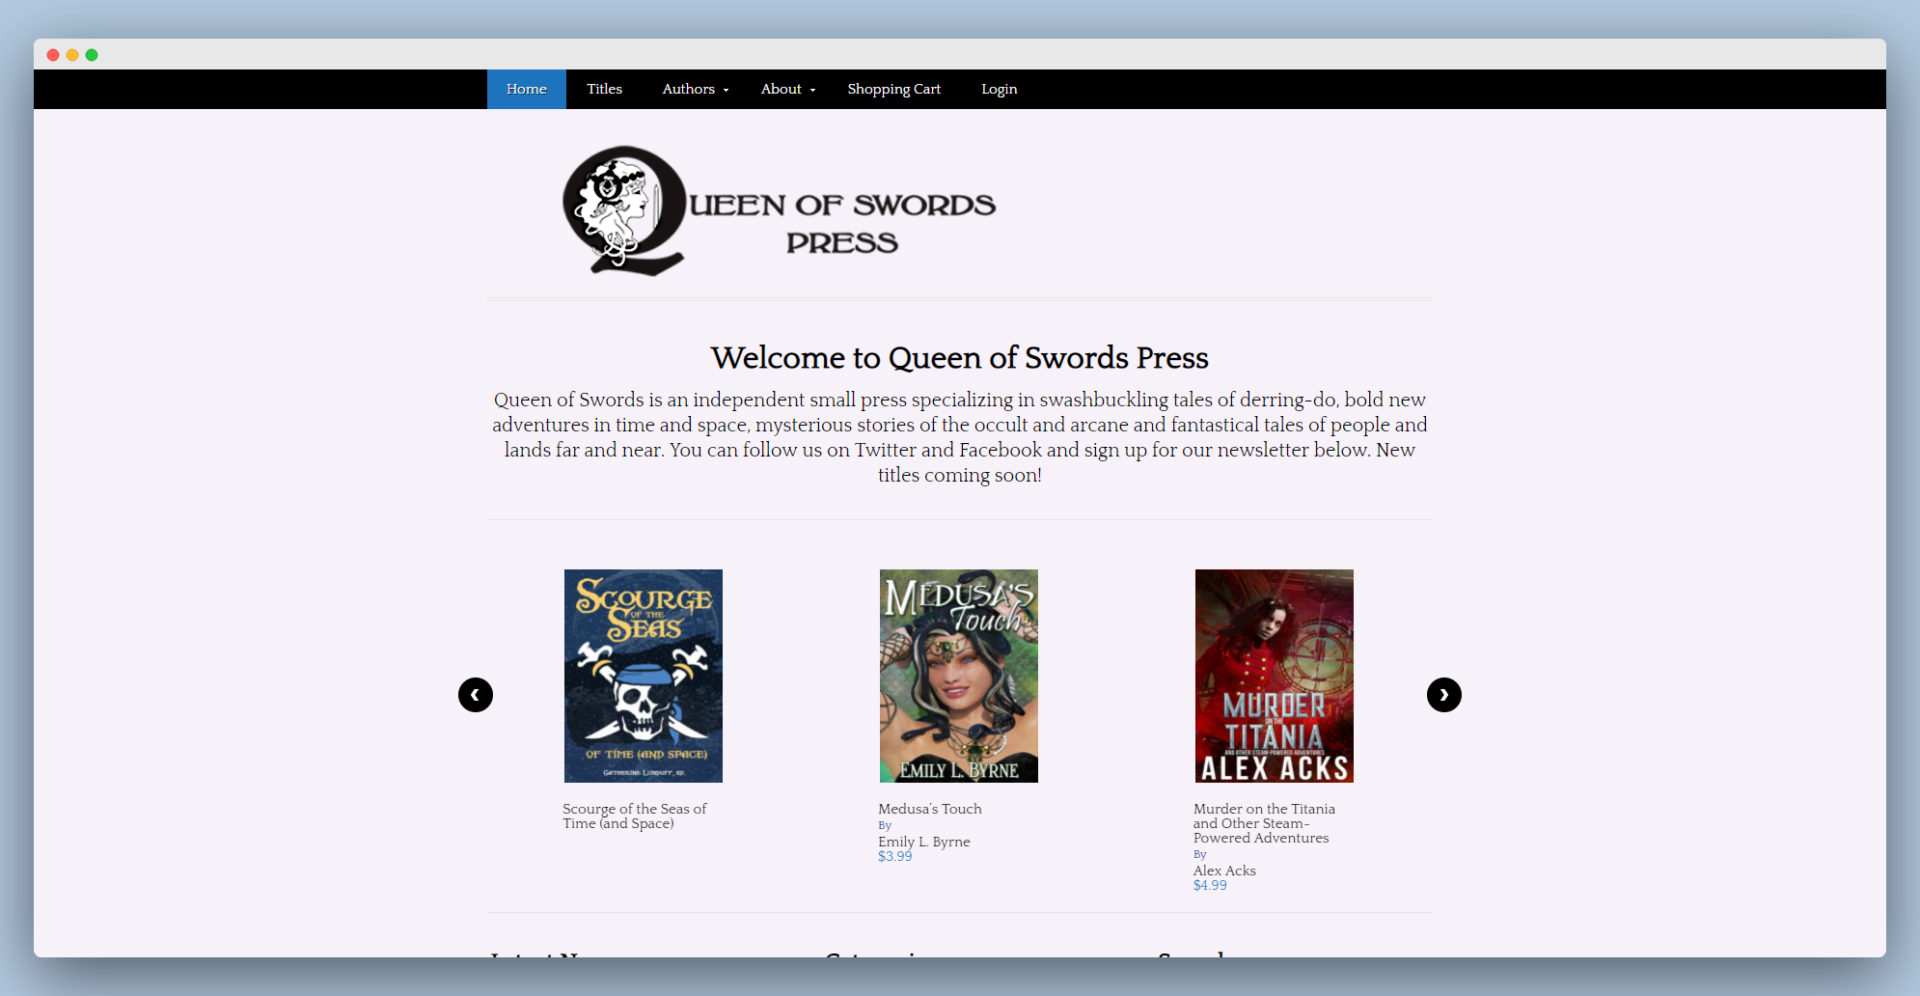 screenshot of the Queen of Swords website